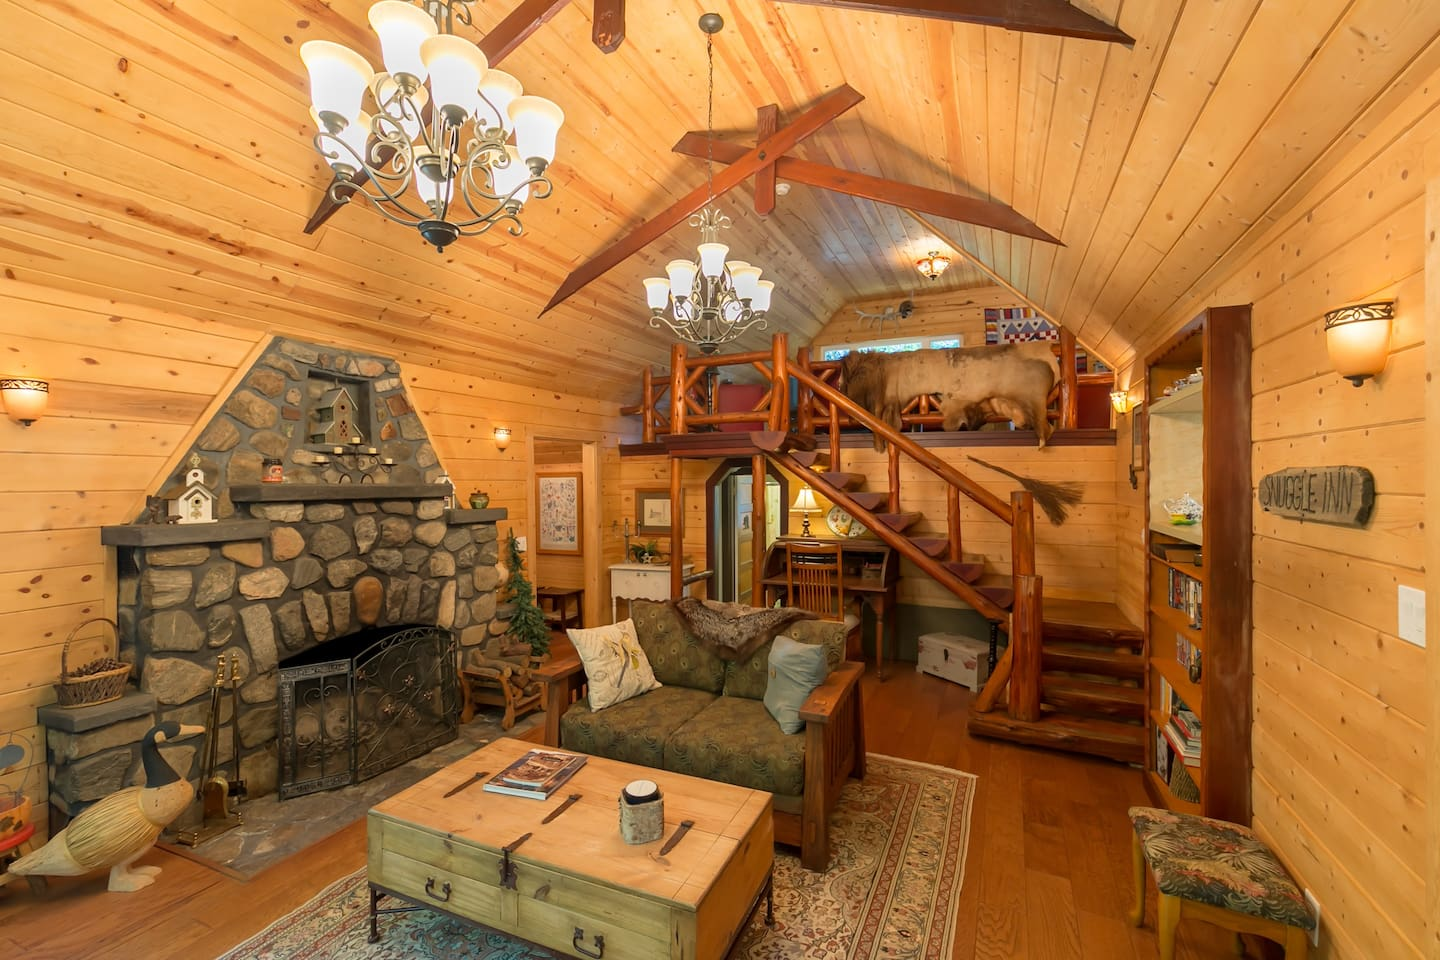 True log cabin rustic charm with huge rock fireplace!